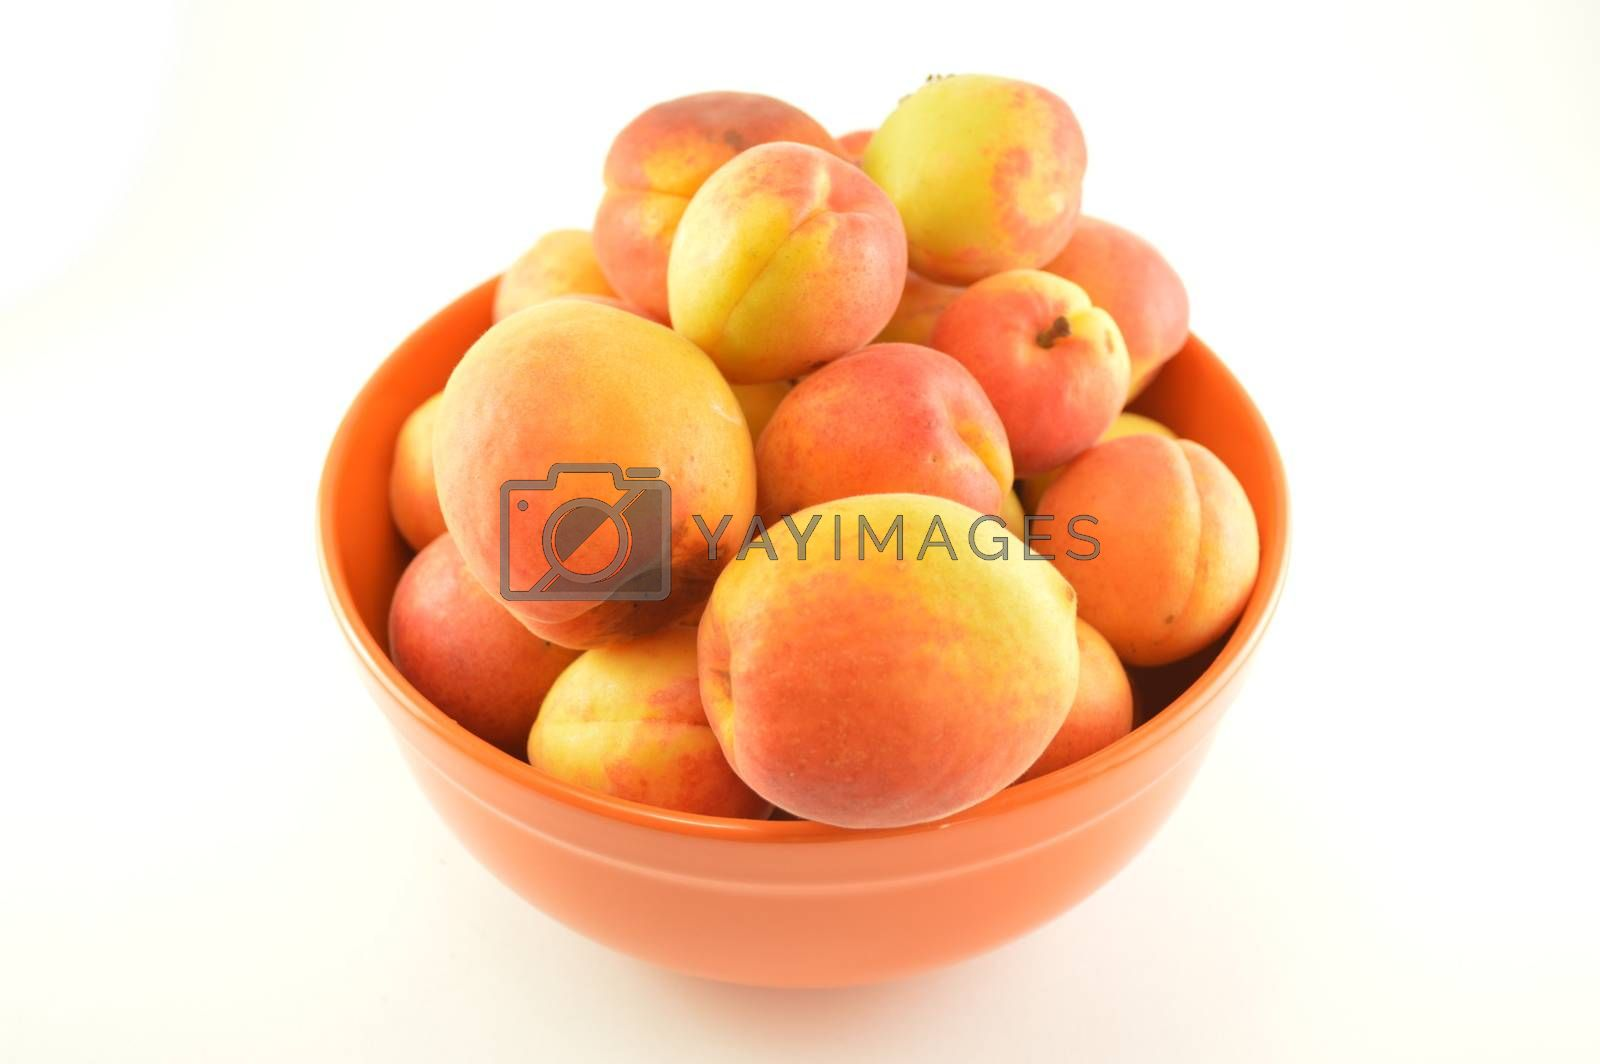 A still life of a bowl full of ripe peaches